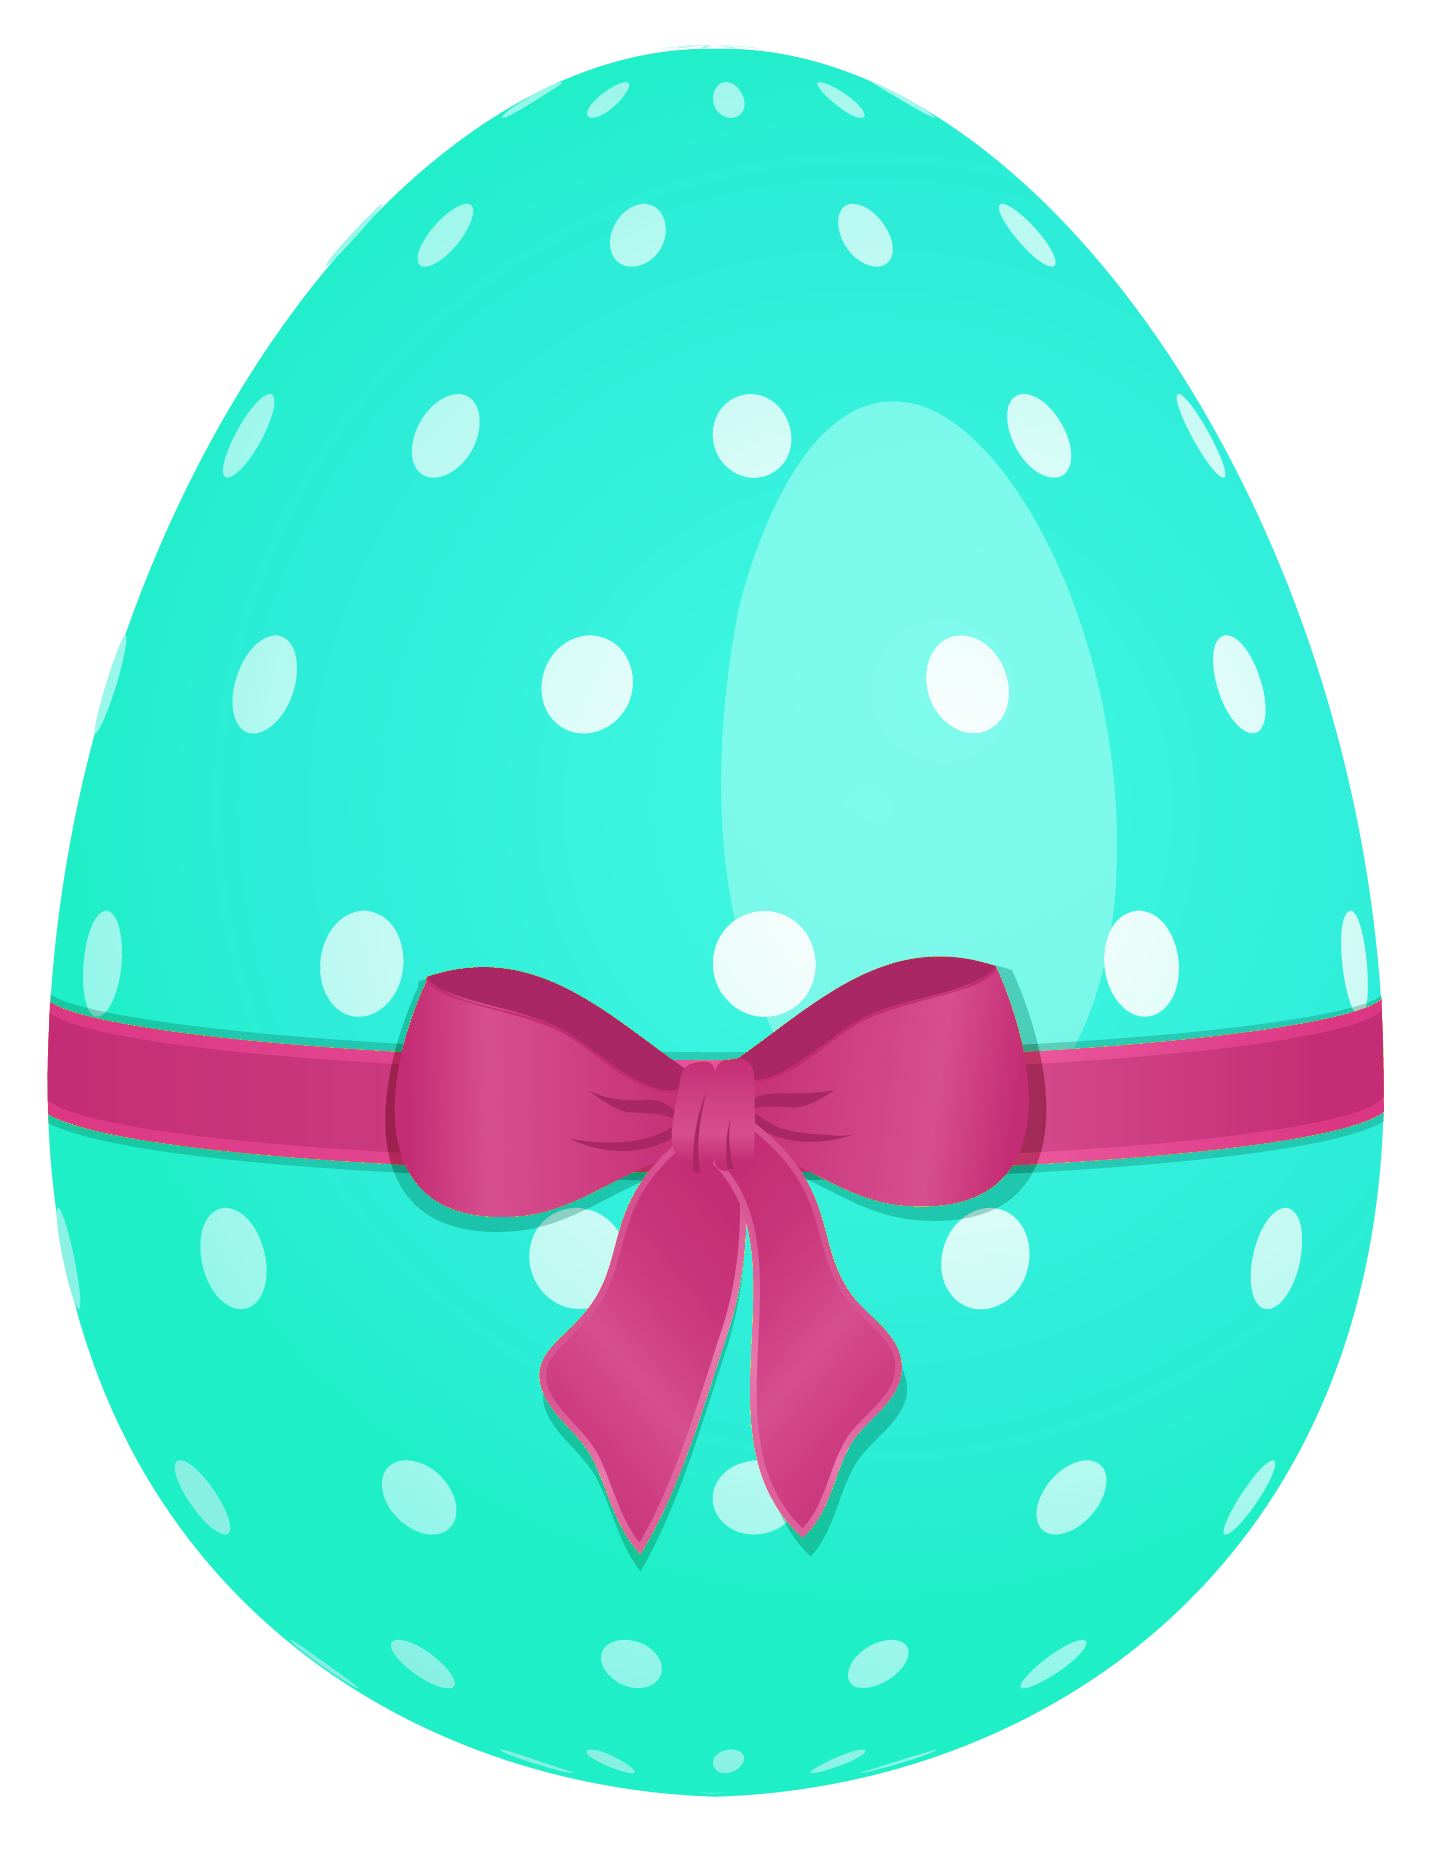 Eggs clipart 3 egg, Eggs 3 egg Transparent FREE for download on ... royalty free